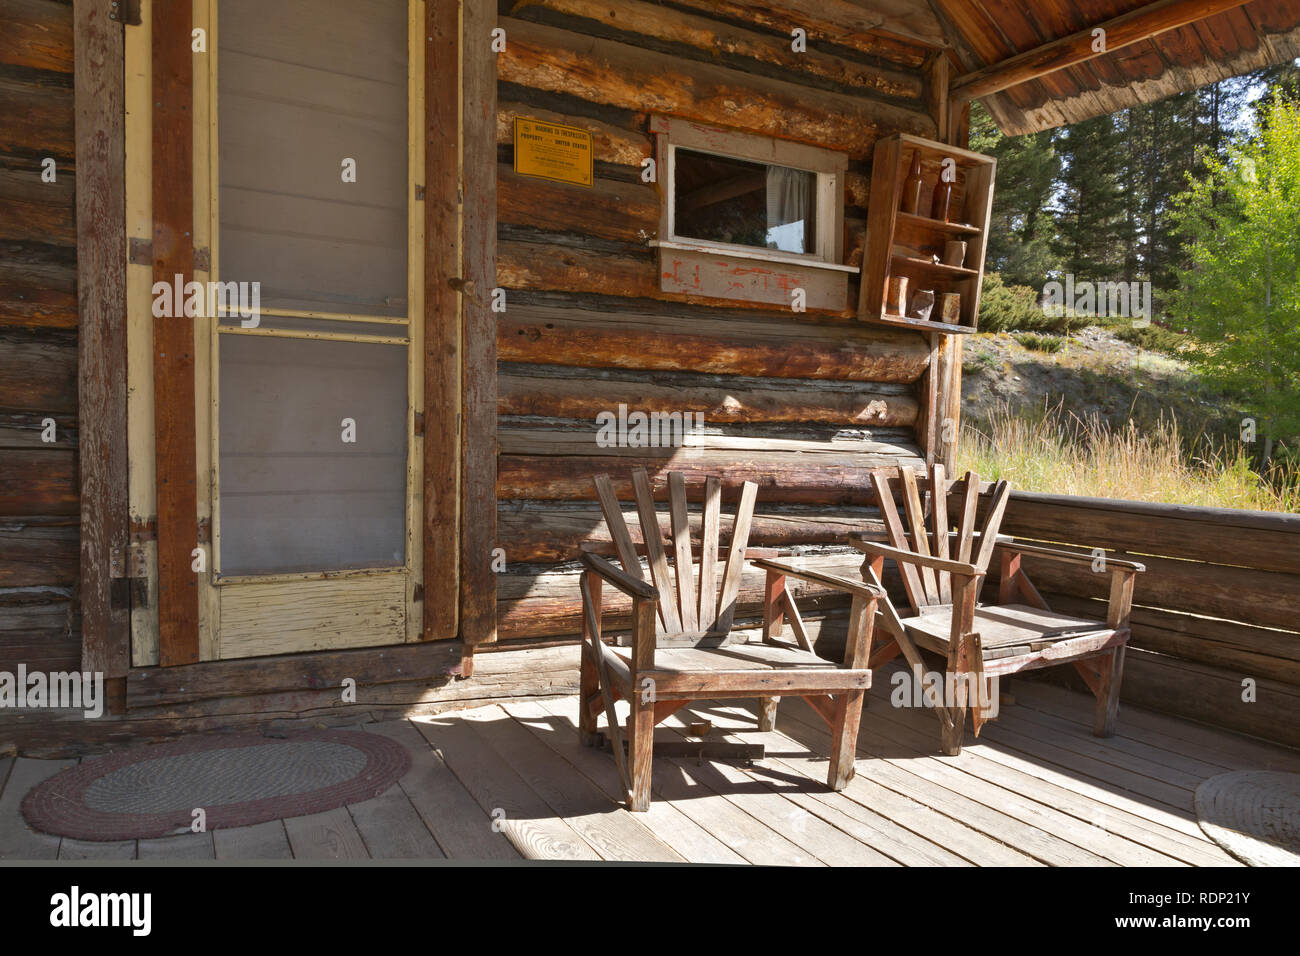 MT00277-00...MONTANA - Chairs on the porch of the Ole Dahl residence at the ghost town of Garnet, now a tourist destination run by the Bureau of Land  - Stock Image